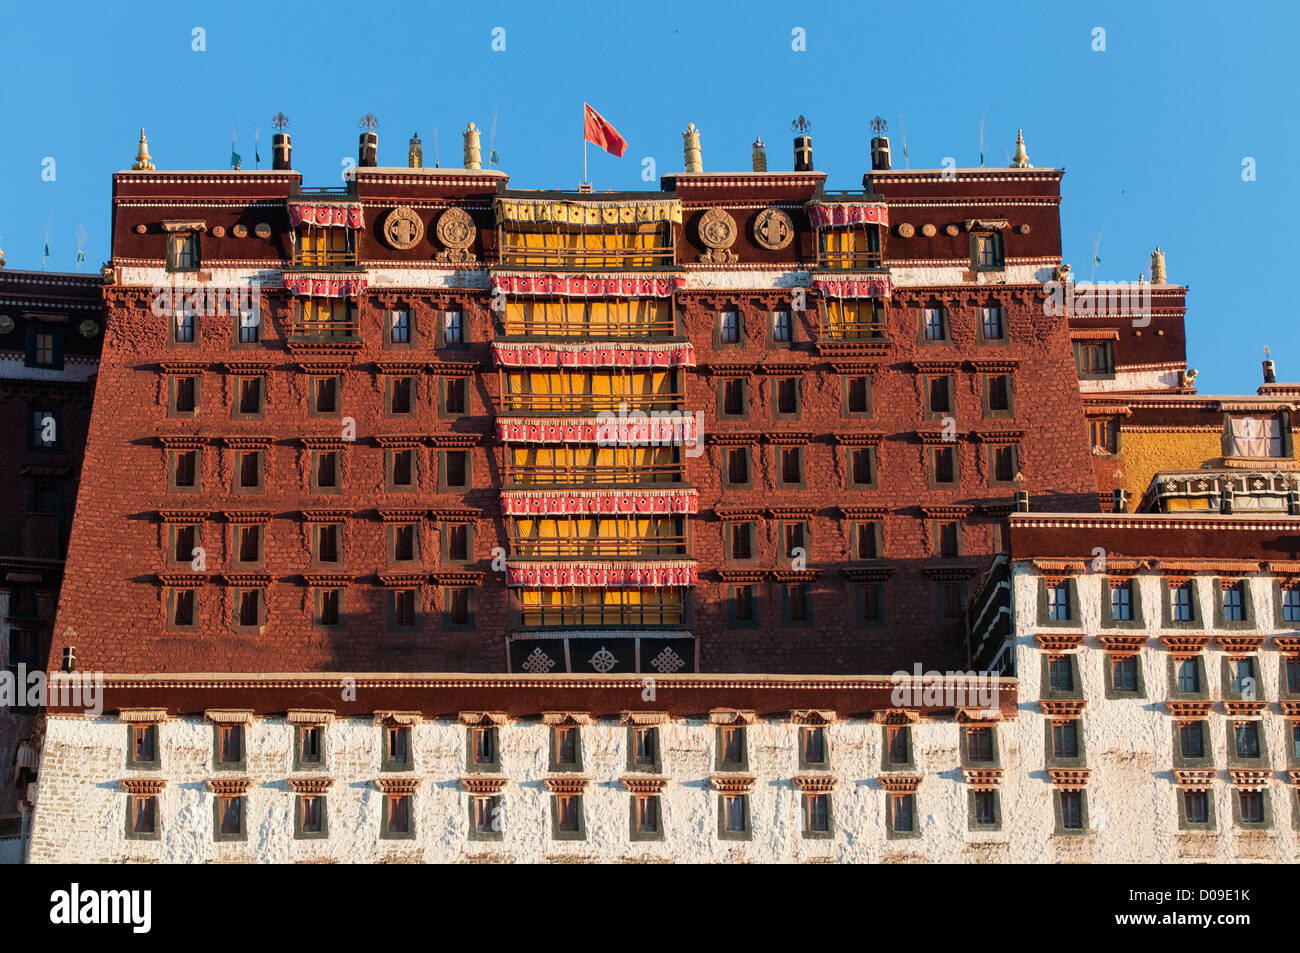 Chinese flag flutters above Portala Palace, no longer an active monastery, Lhasa, Tibet, China. - Stock Image